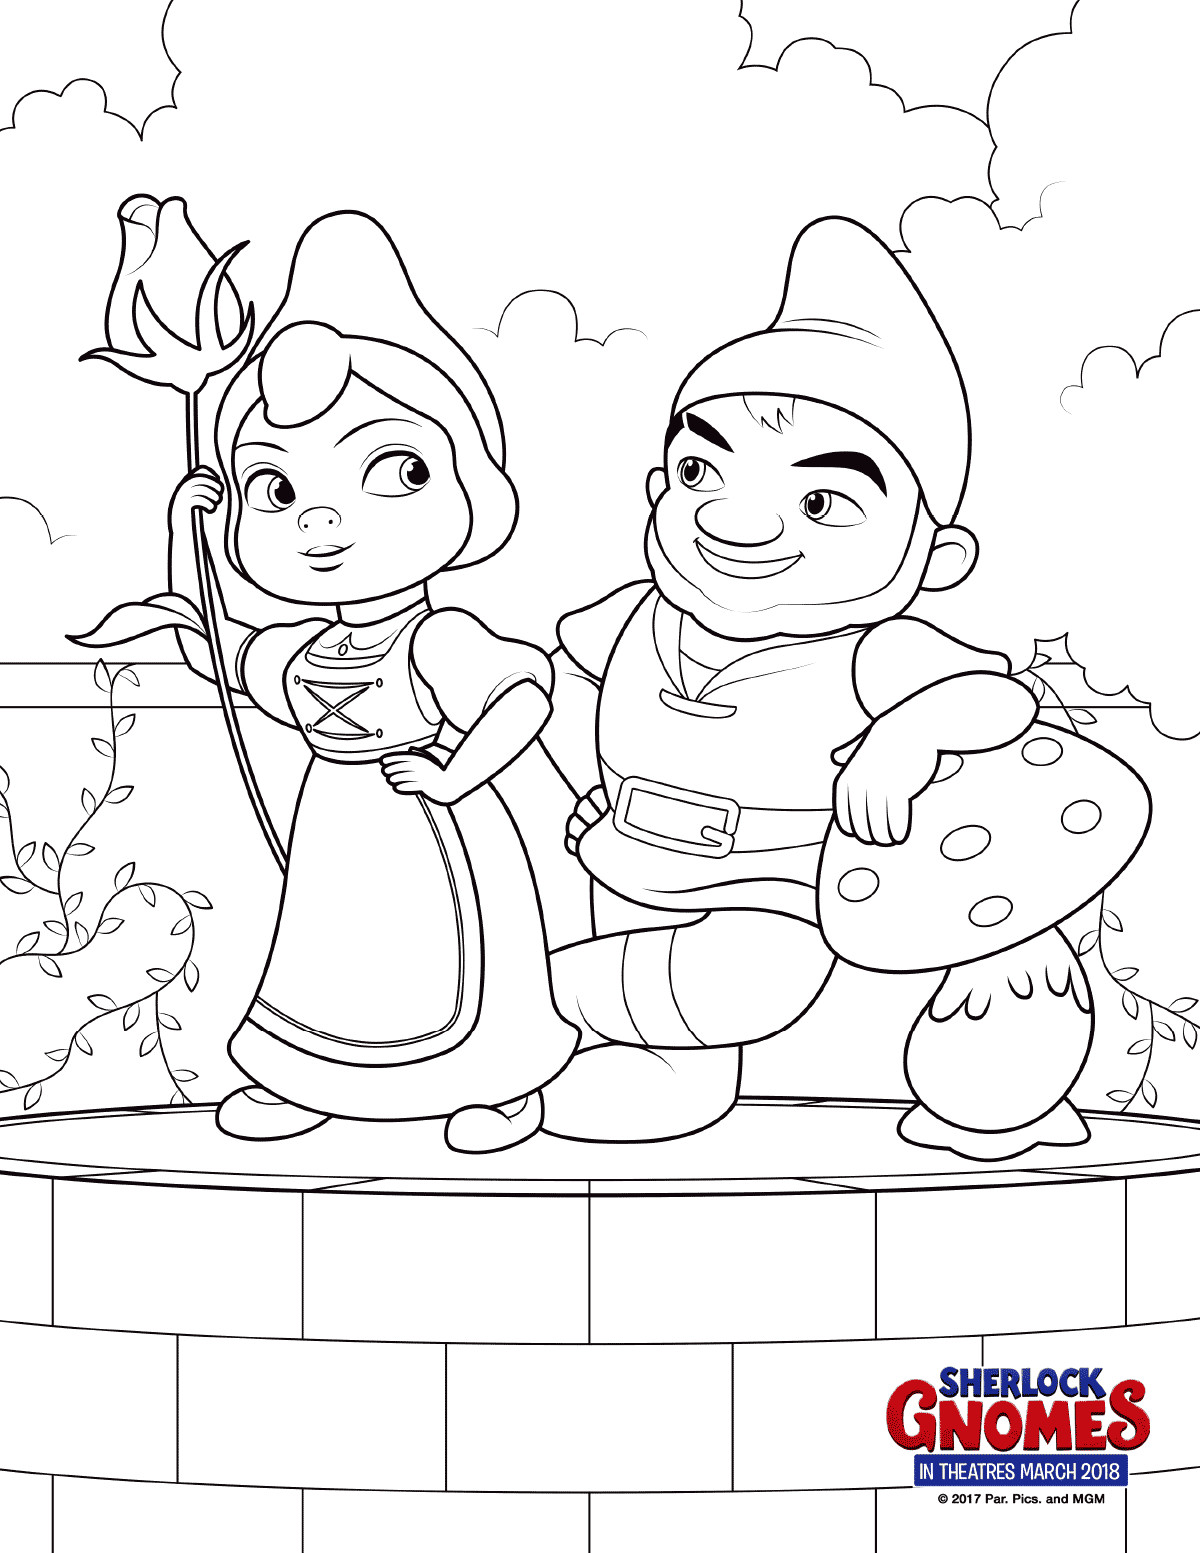 Gnome Coloring Pages  Free Printable Sherlock Gnomes Coloring Pages